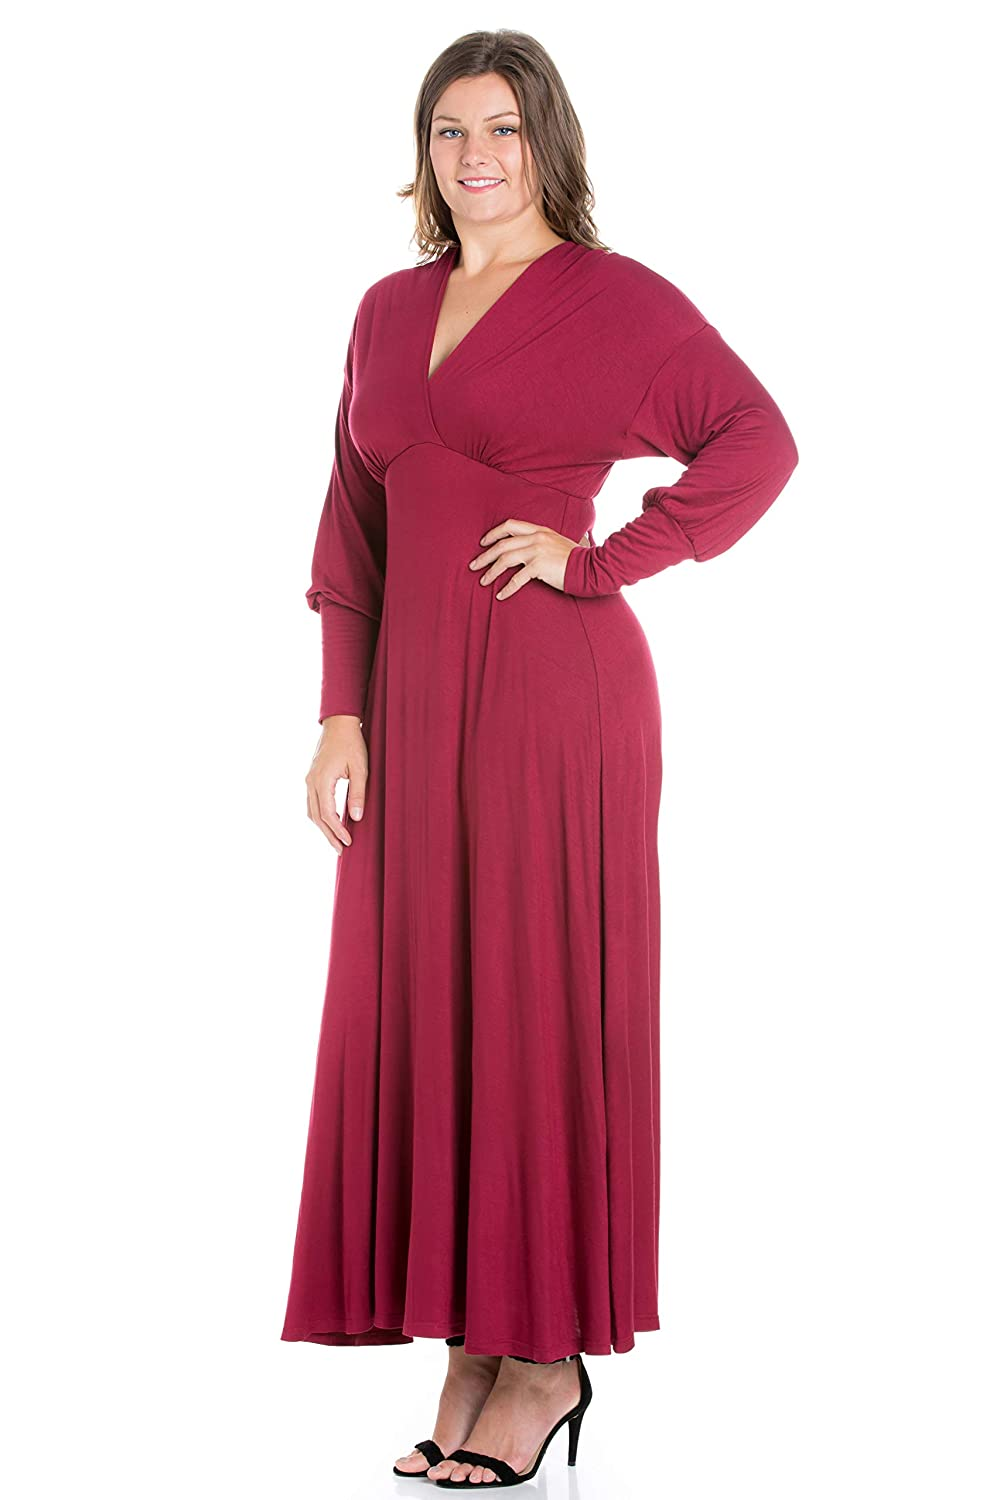 883d72c8d43 24seven Comfort Apparel Women s Plus Size Drop Shoulder Long Sleeve V Neck Maxi  Dress - Made in USA - (Sizes 1XL-3XL) at Amazon Women s Clothing store